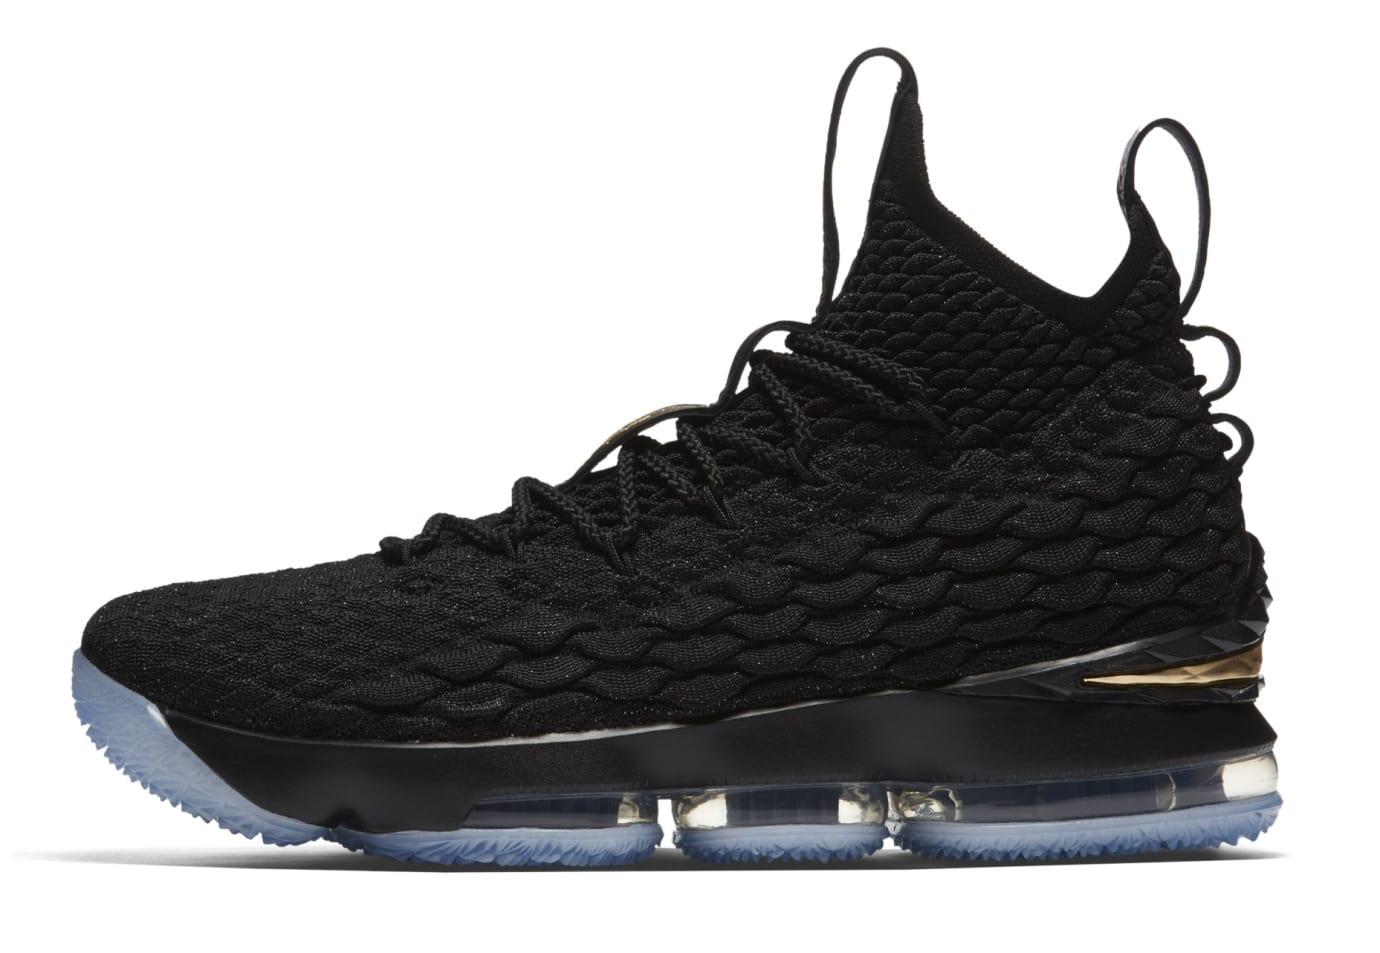 Nike LeBron 15 'Black/Gold' 897649-006 (Lateral)